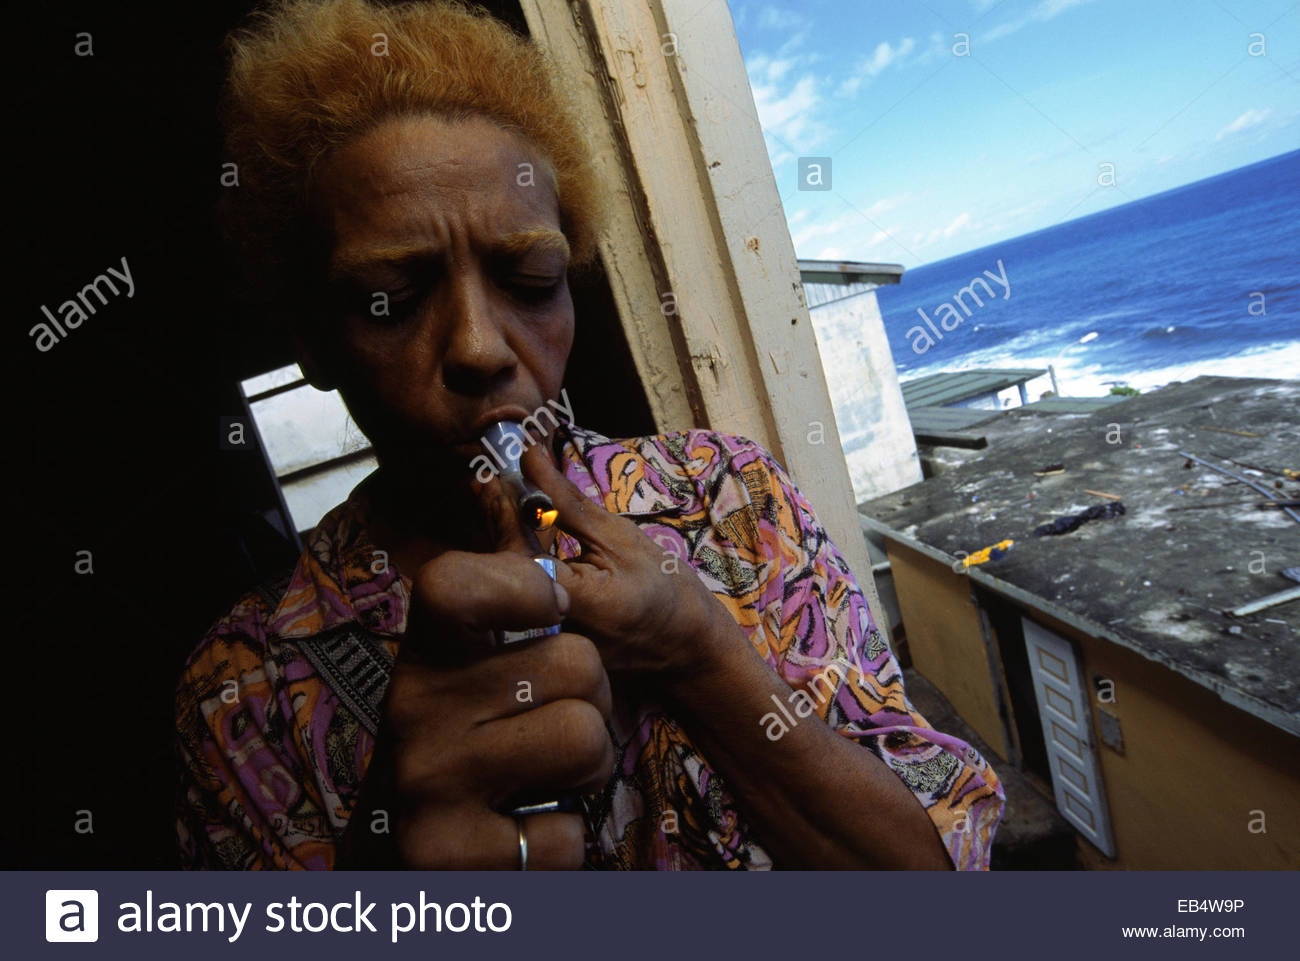 A drug addict lights up in the La Perla neighborhood of Old San Juan. - Stock Image